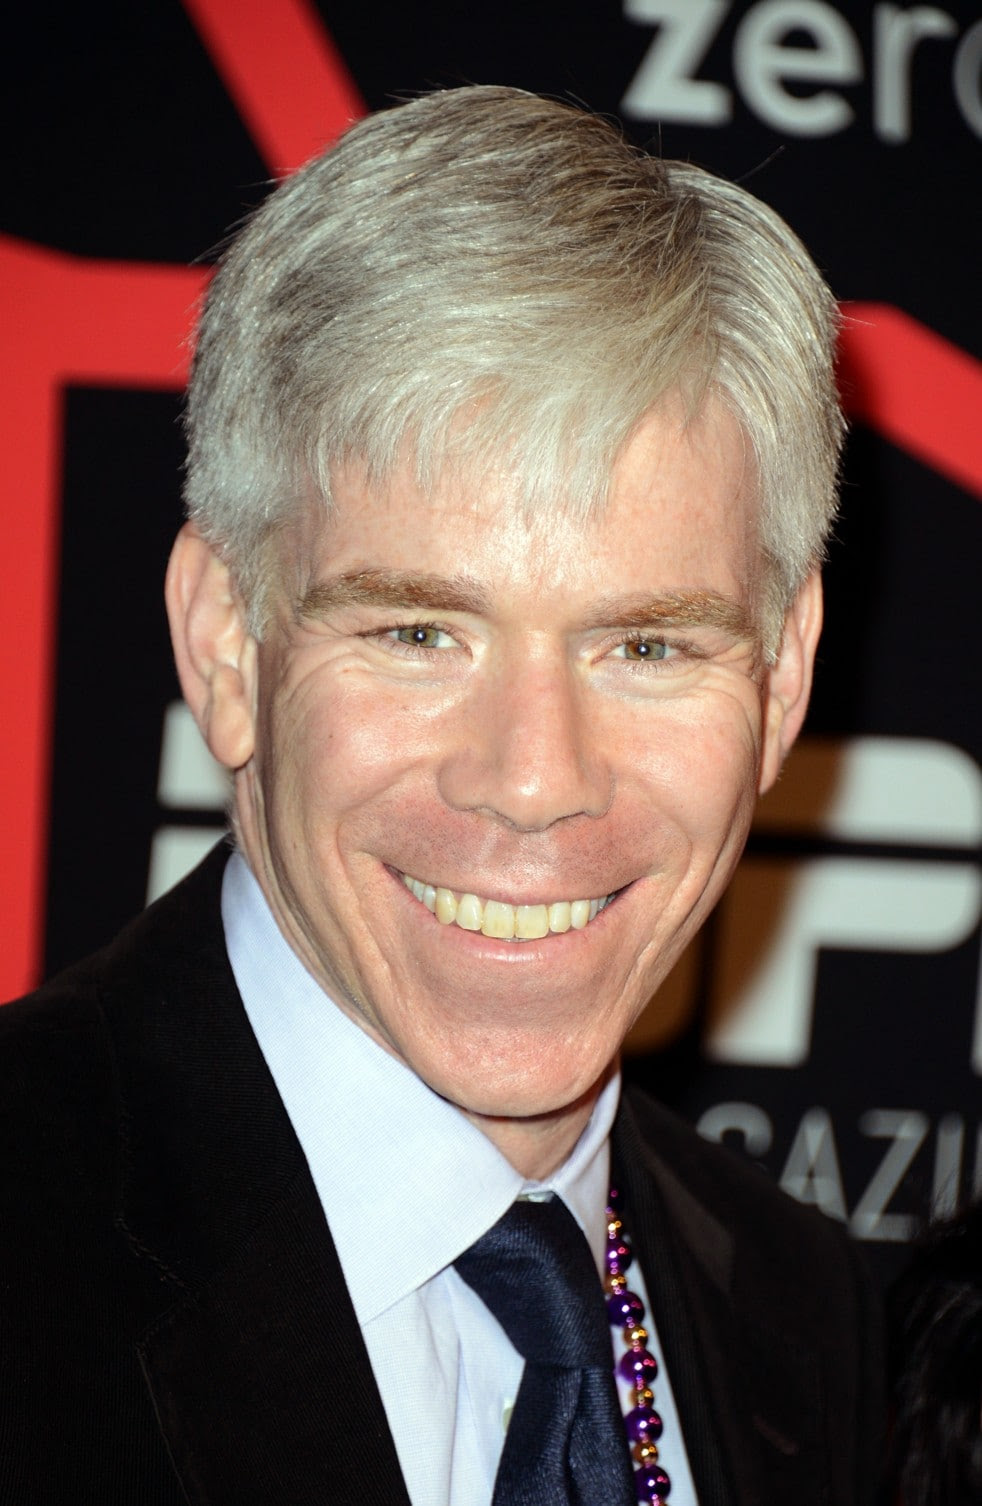 David Gregory earlier this year. (Photo by Jordan Strauss / Invision/AP)